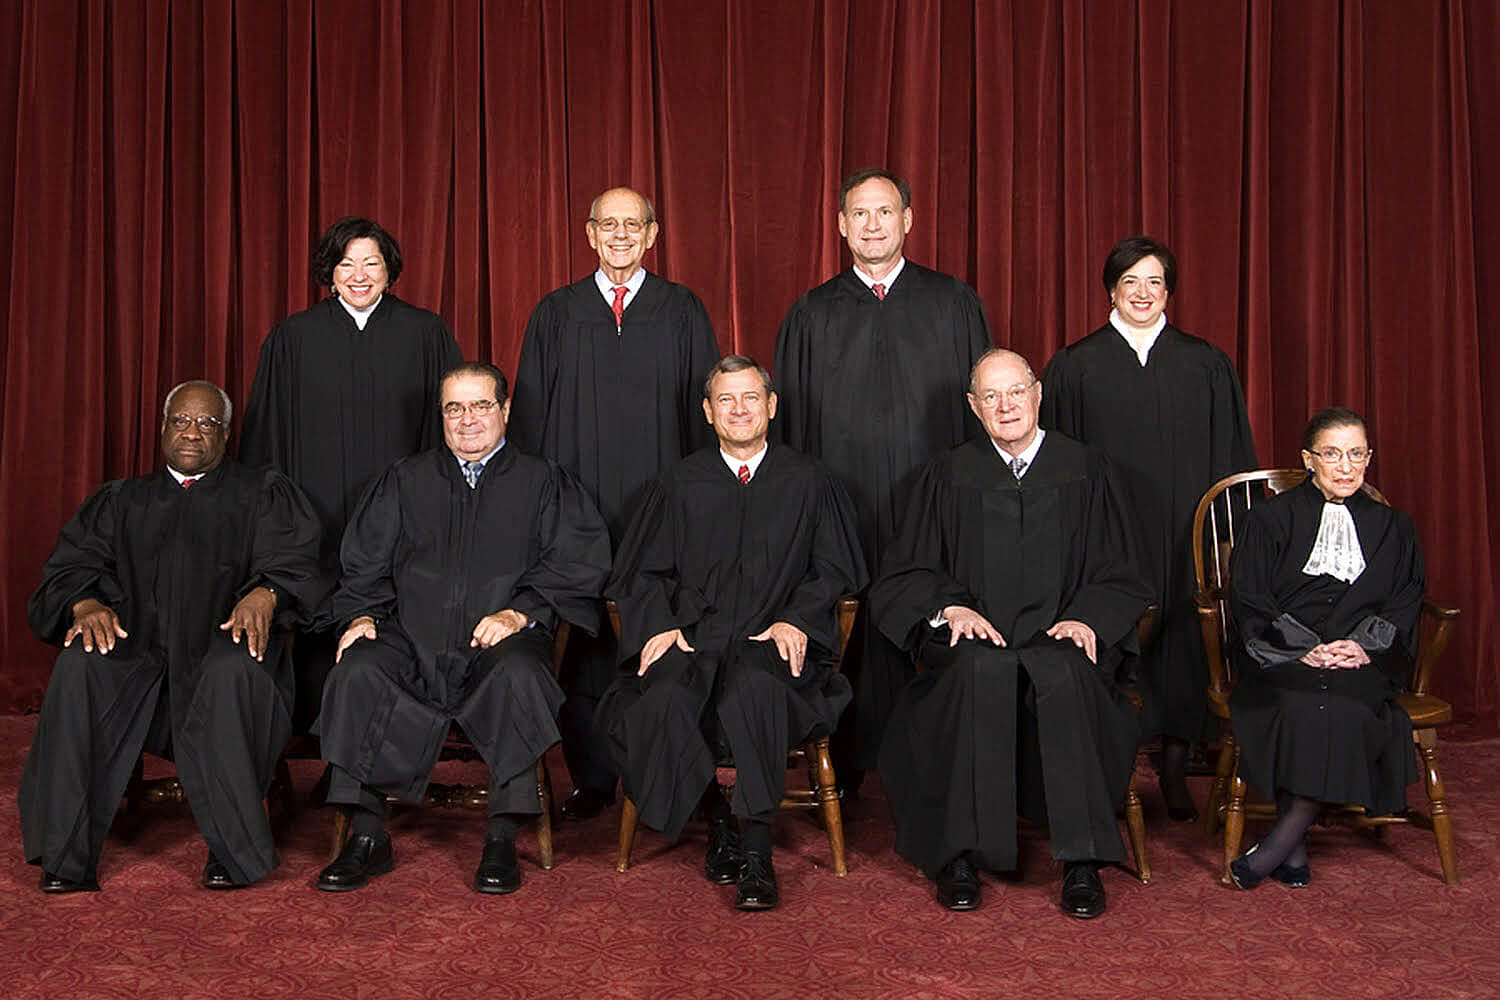 The Supreme Court justices as of 2010